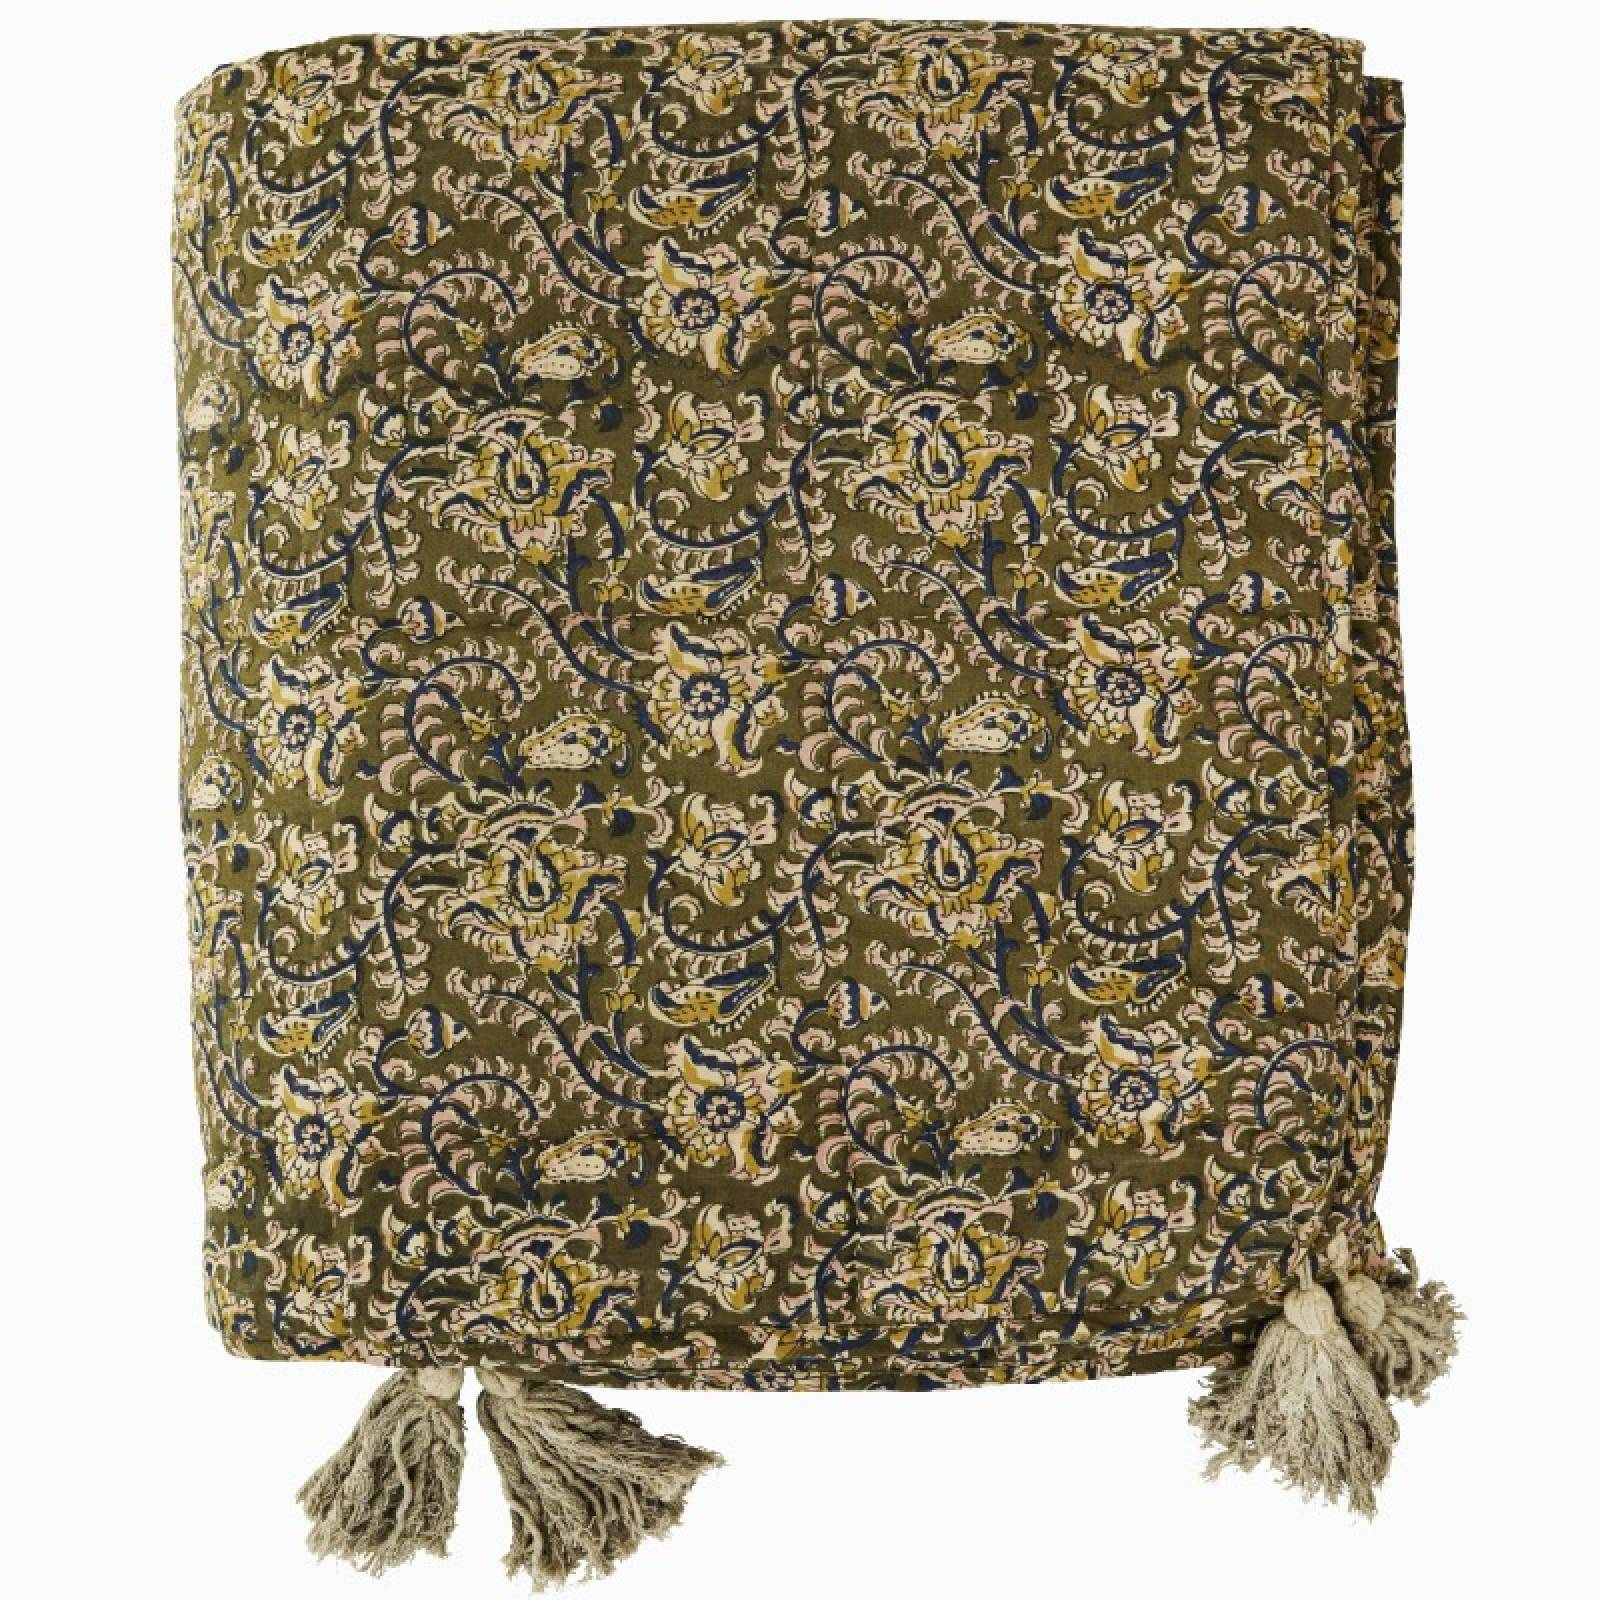 Quilted Cotton Blanket Throw With Tassels In Olive Green